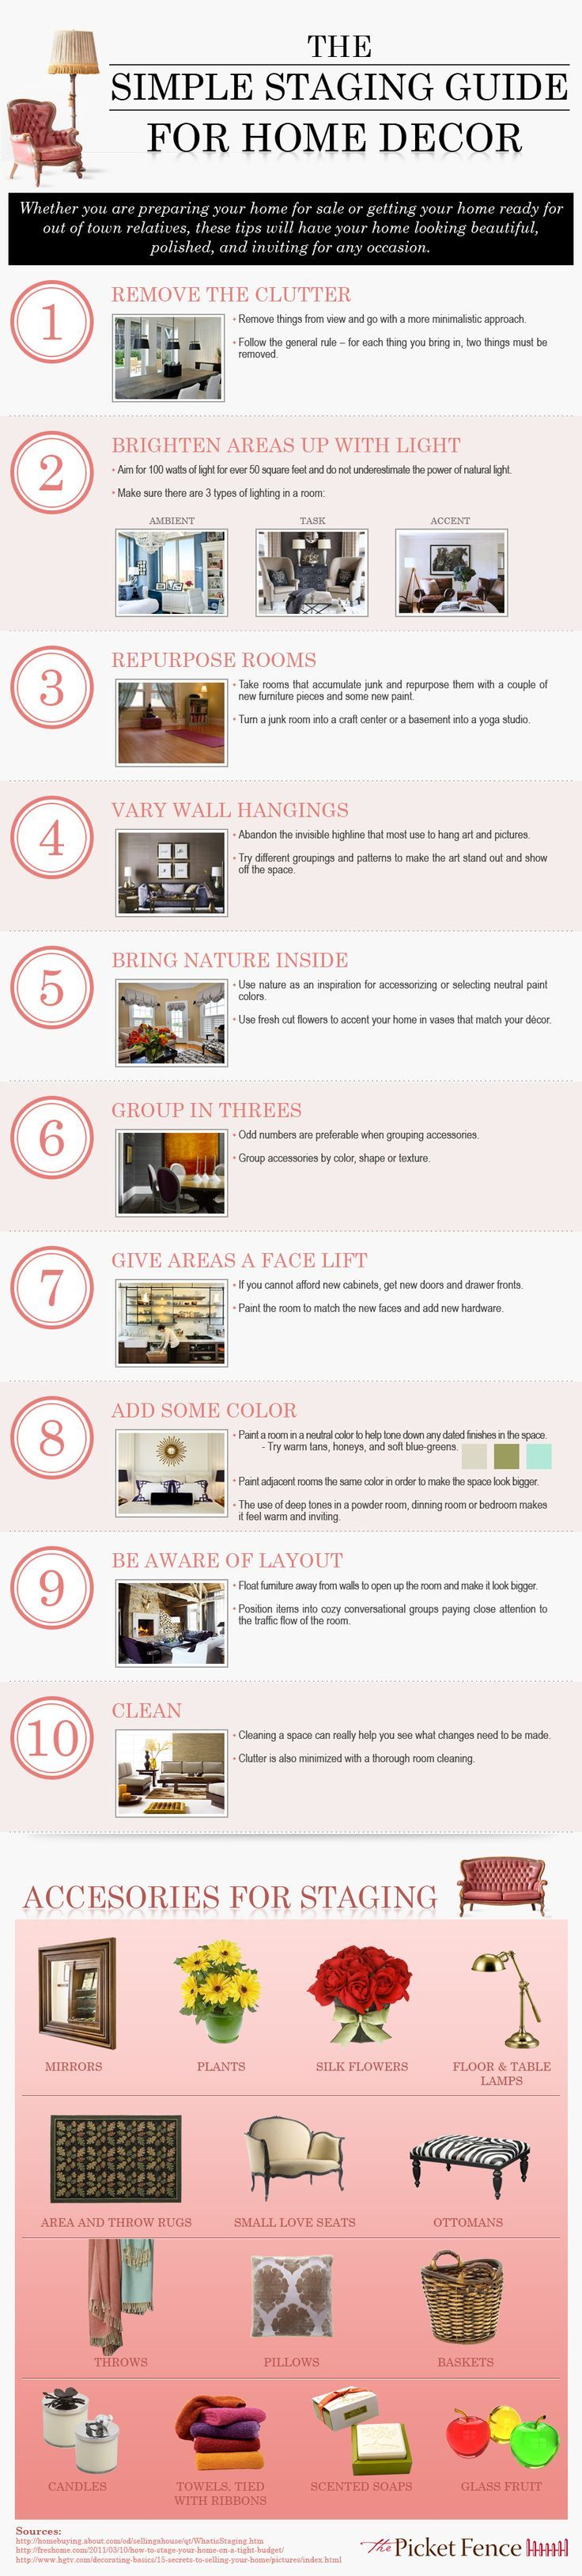 """REAL ESTATE -         """"The Simple Staging Guide for Home Decor highlights tips to make your home beautiful."""" real estate investing, investing in real estate"""